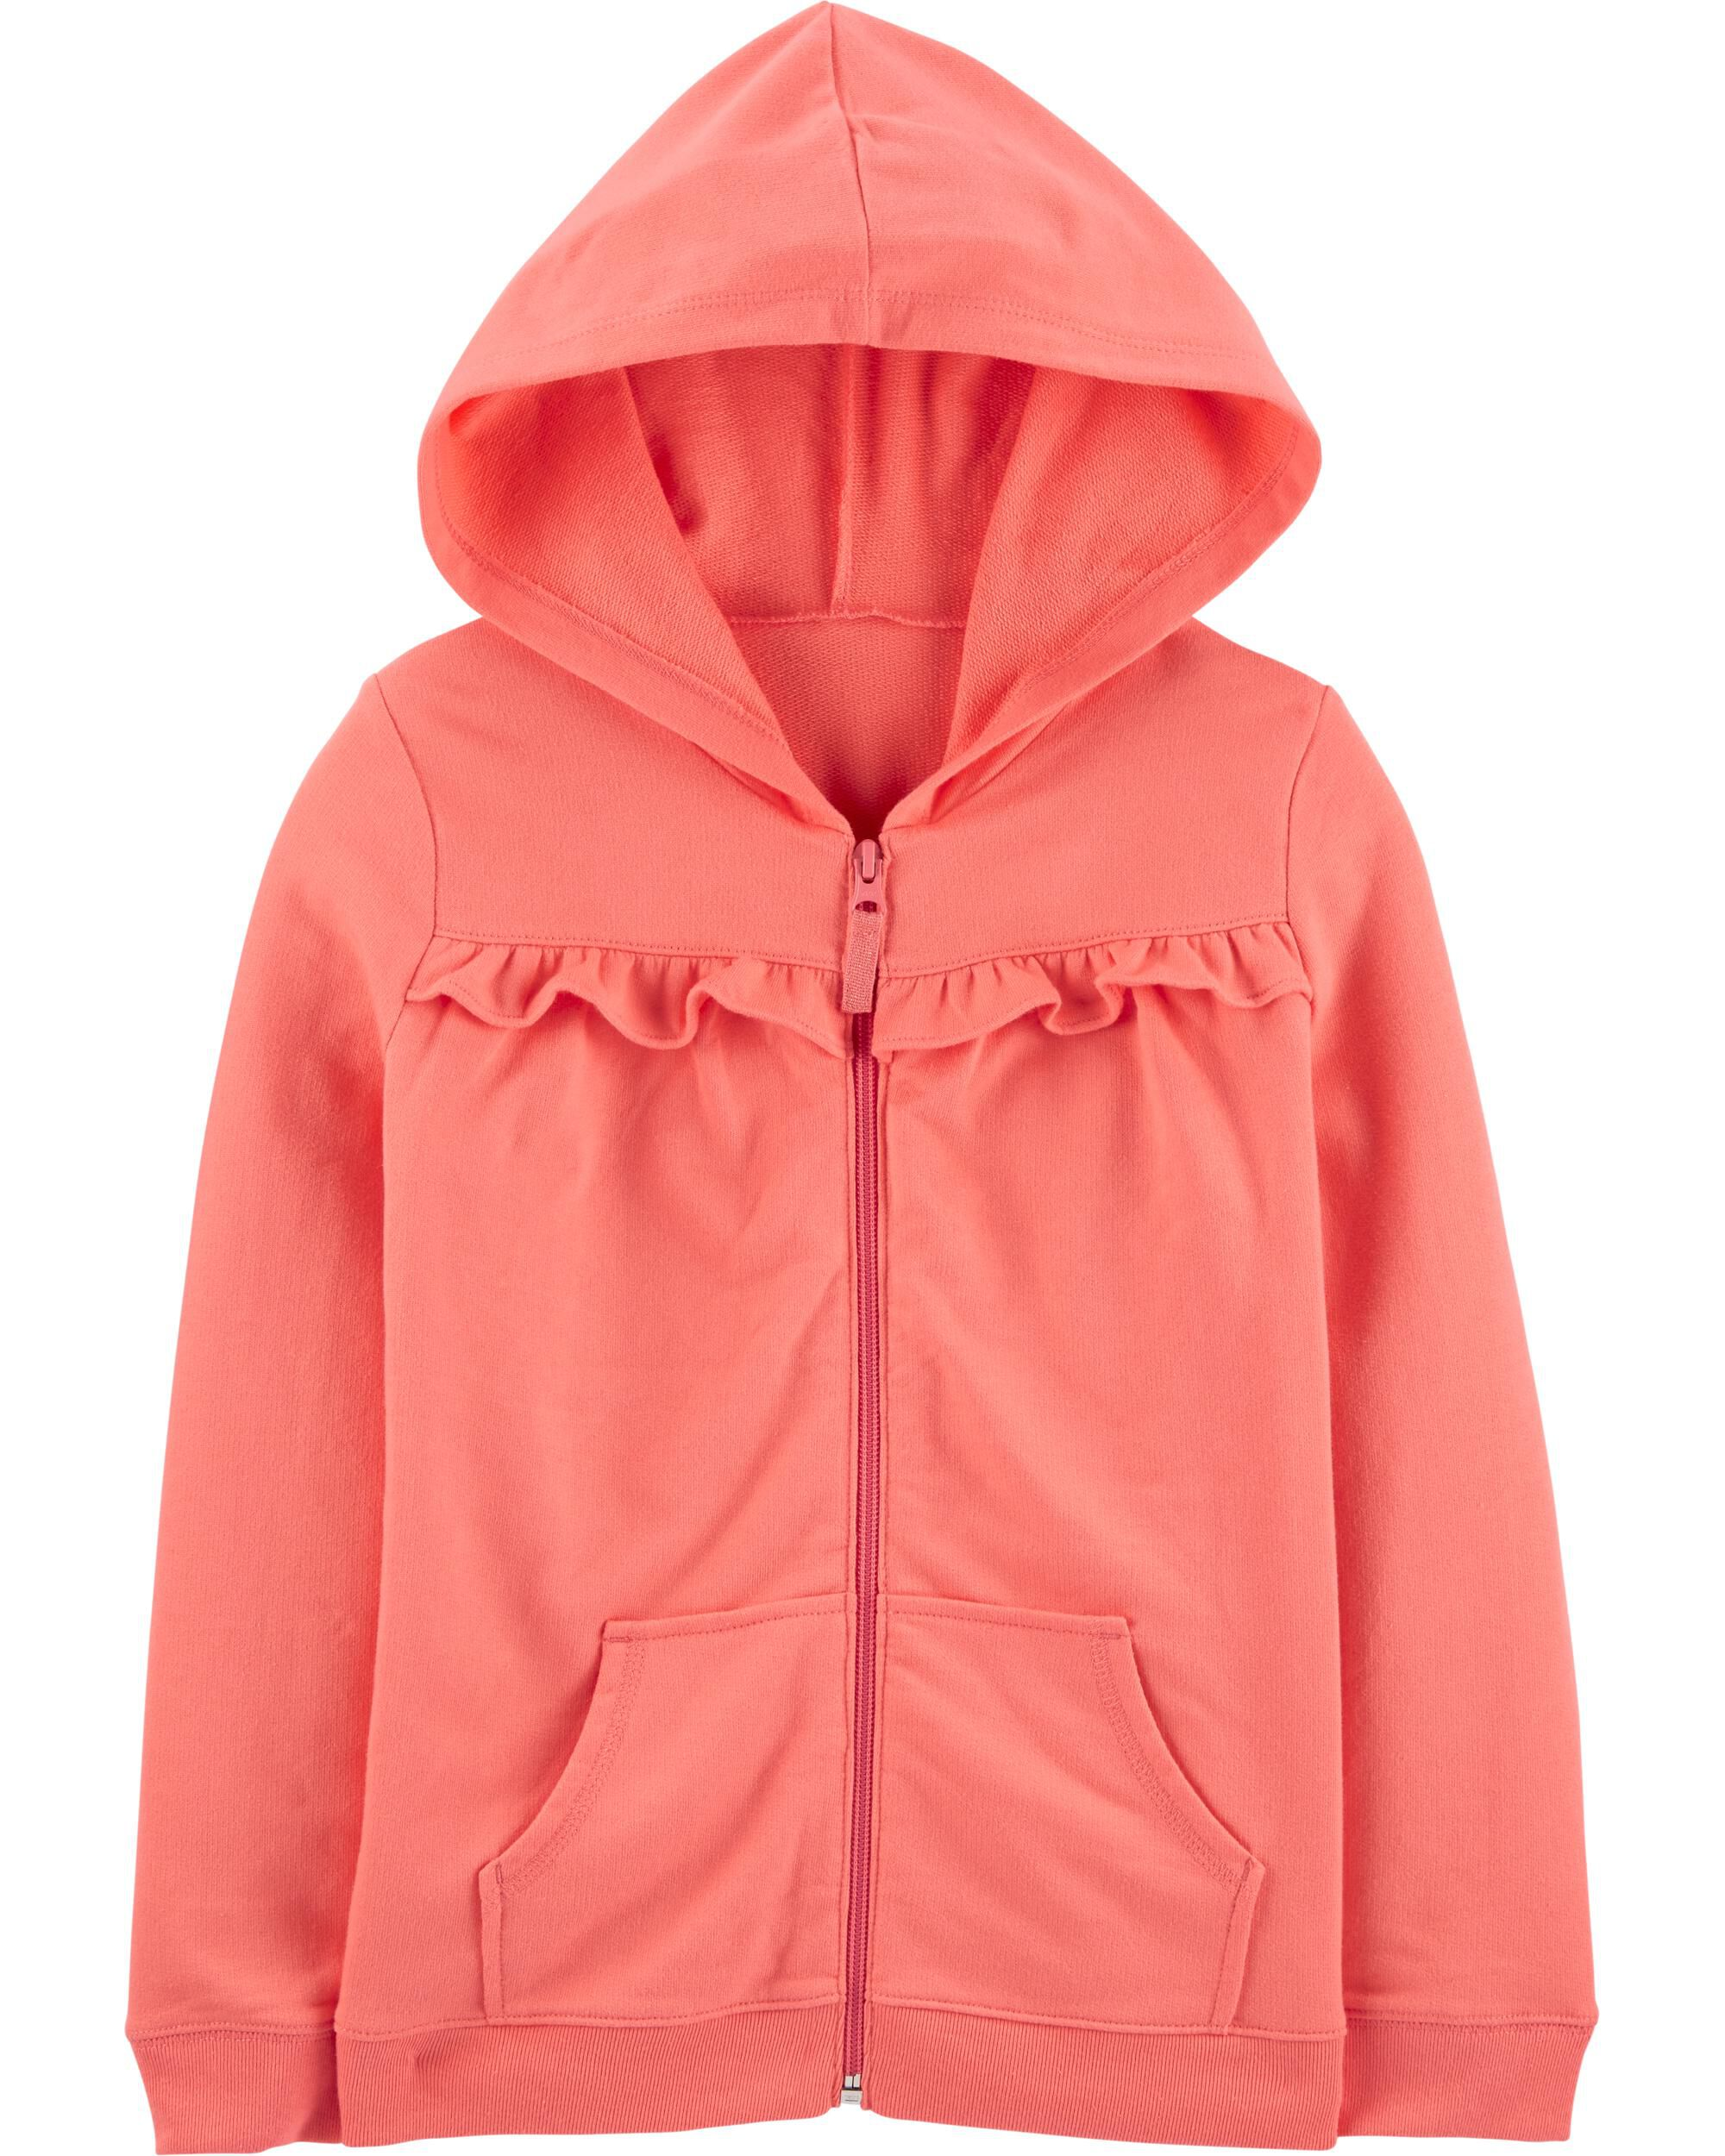 *CLEARANCE* Ruffle Zip-Up French Terry Hoodie